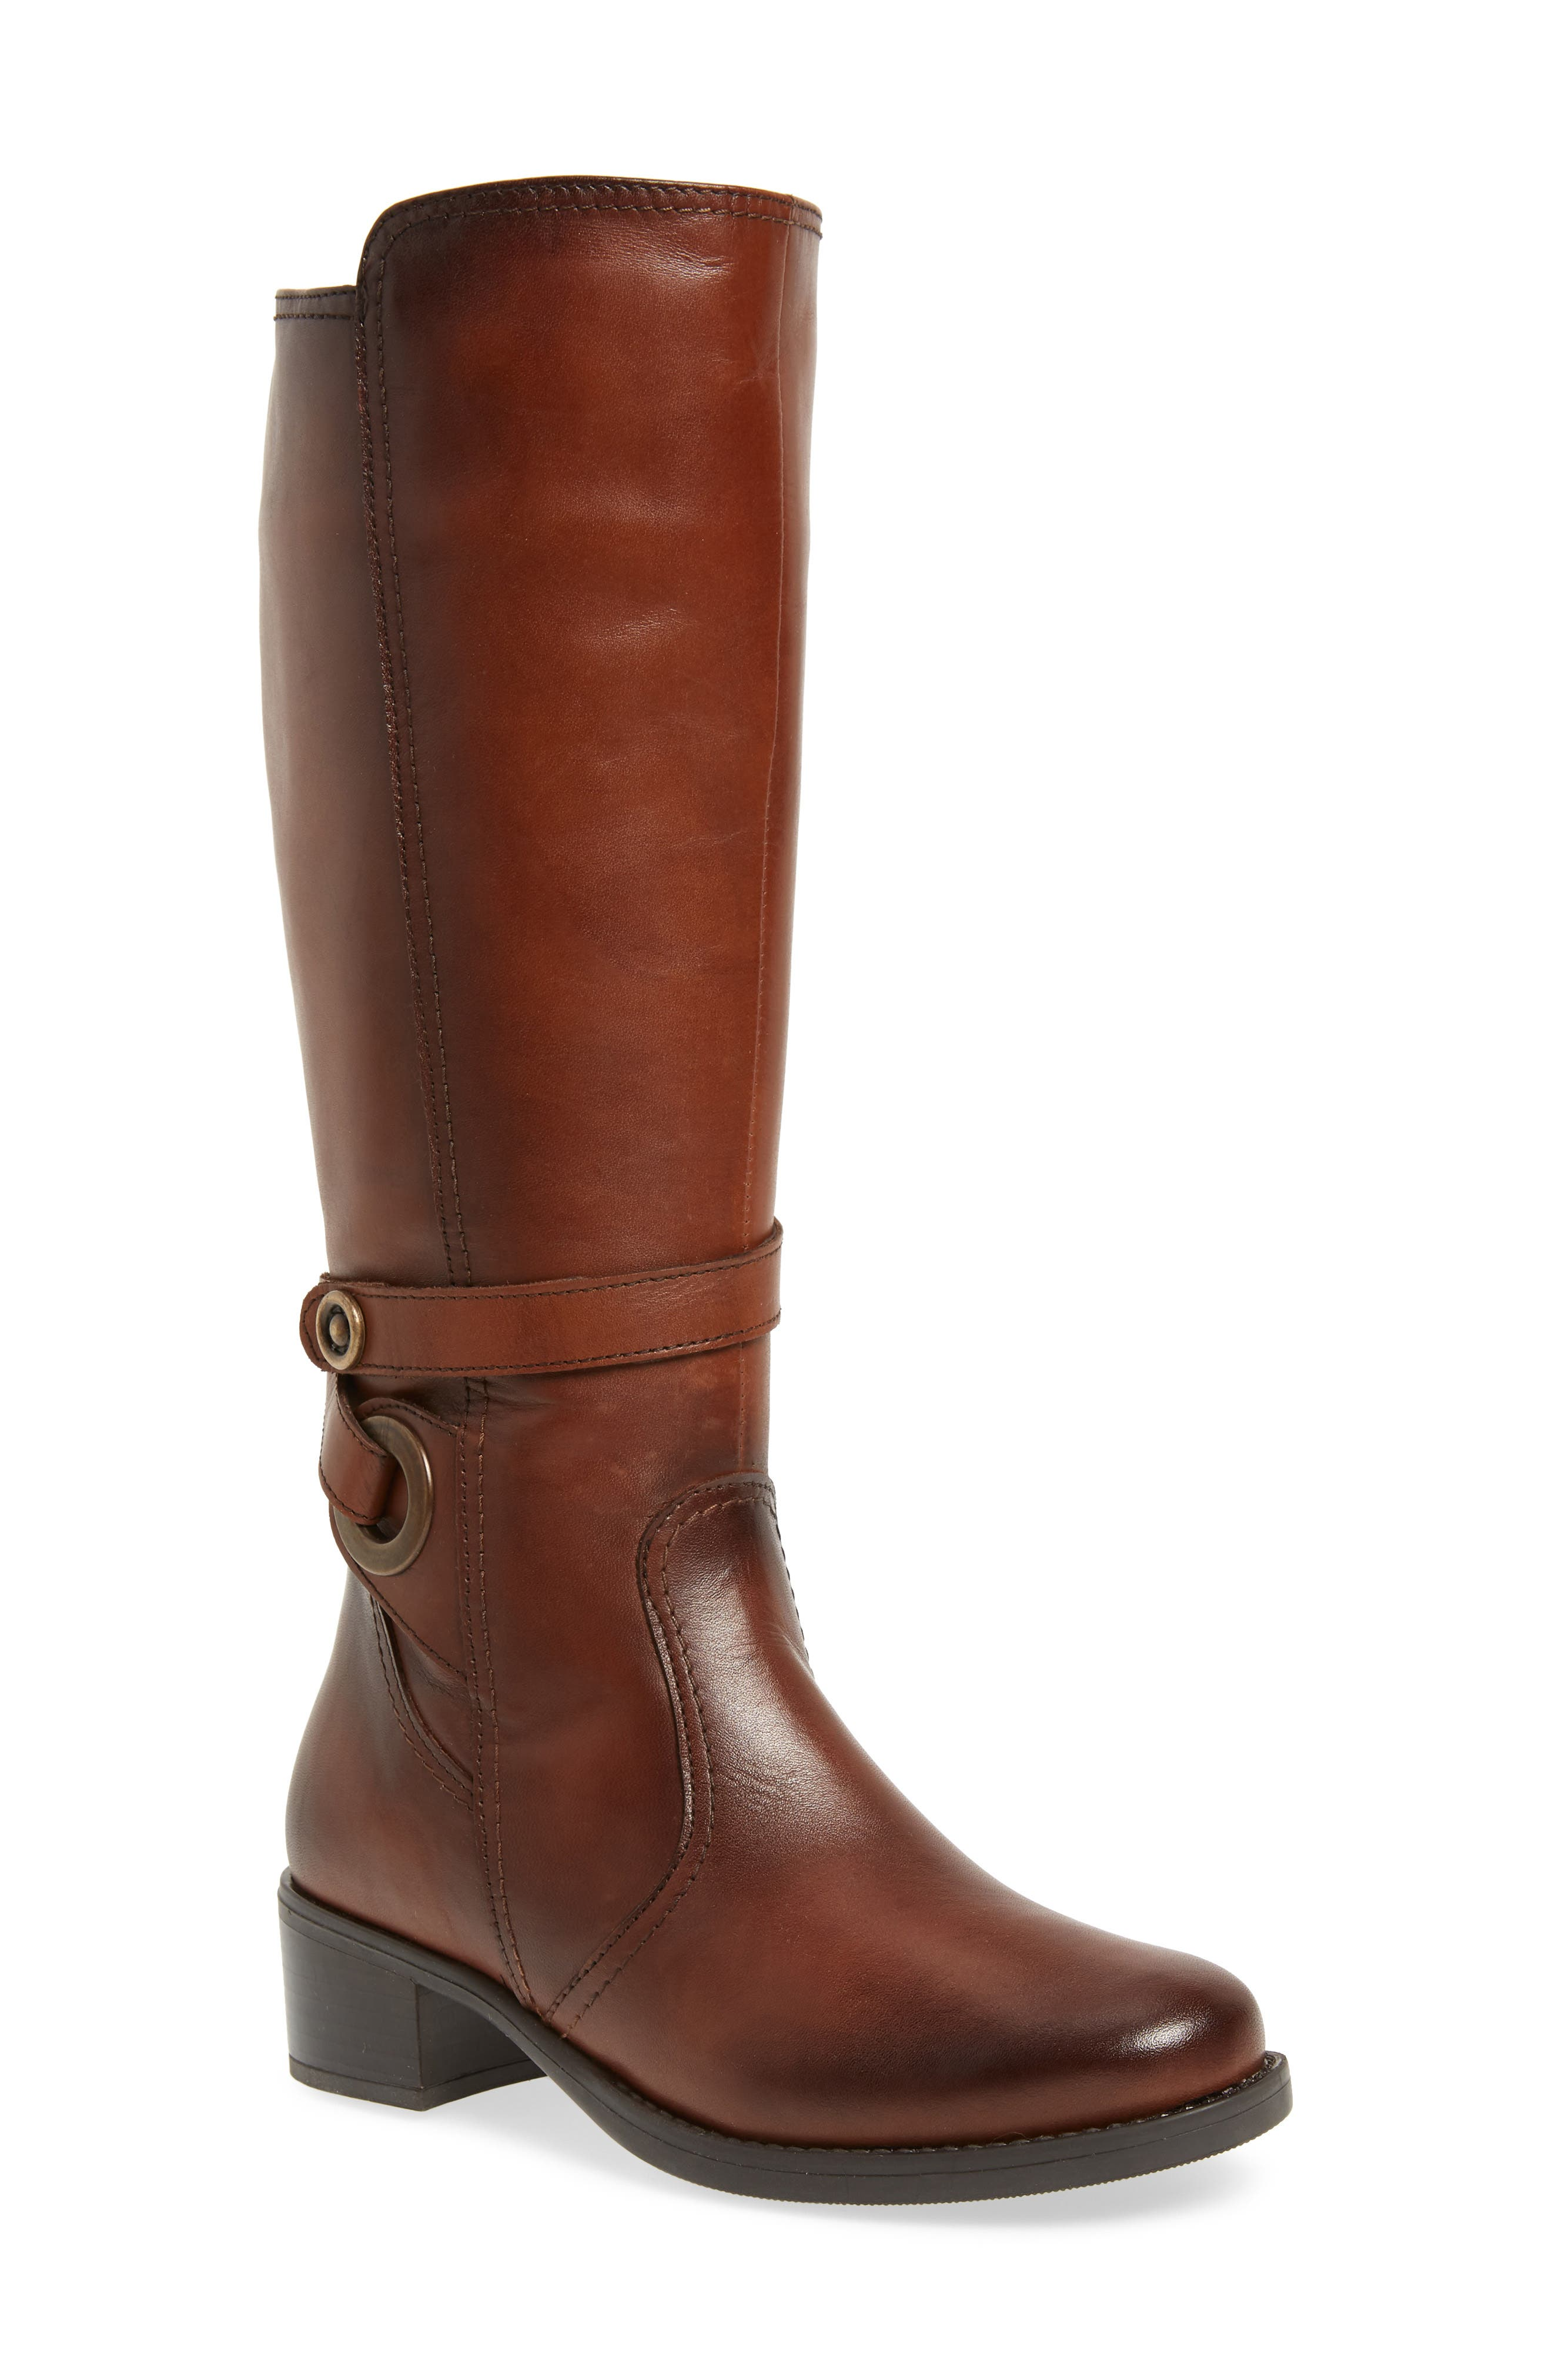 David Tate Portofino Boot, Brown